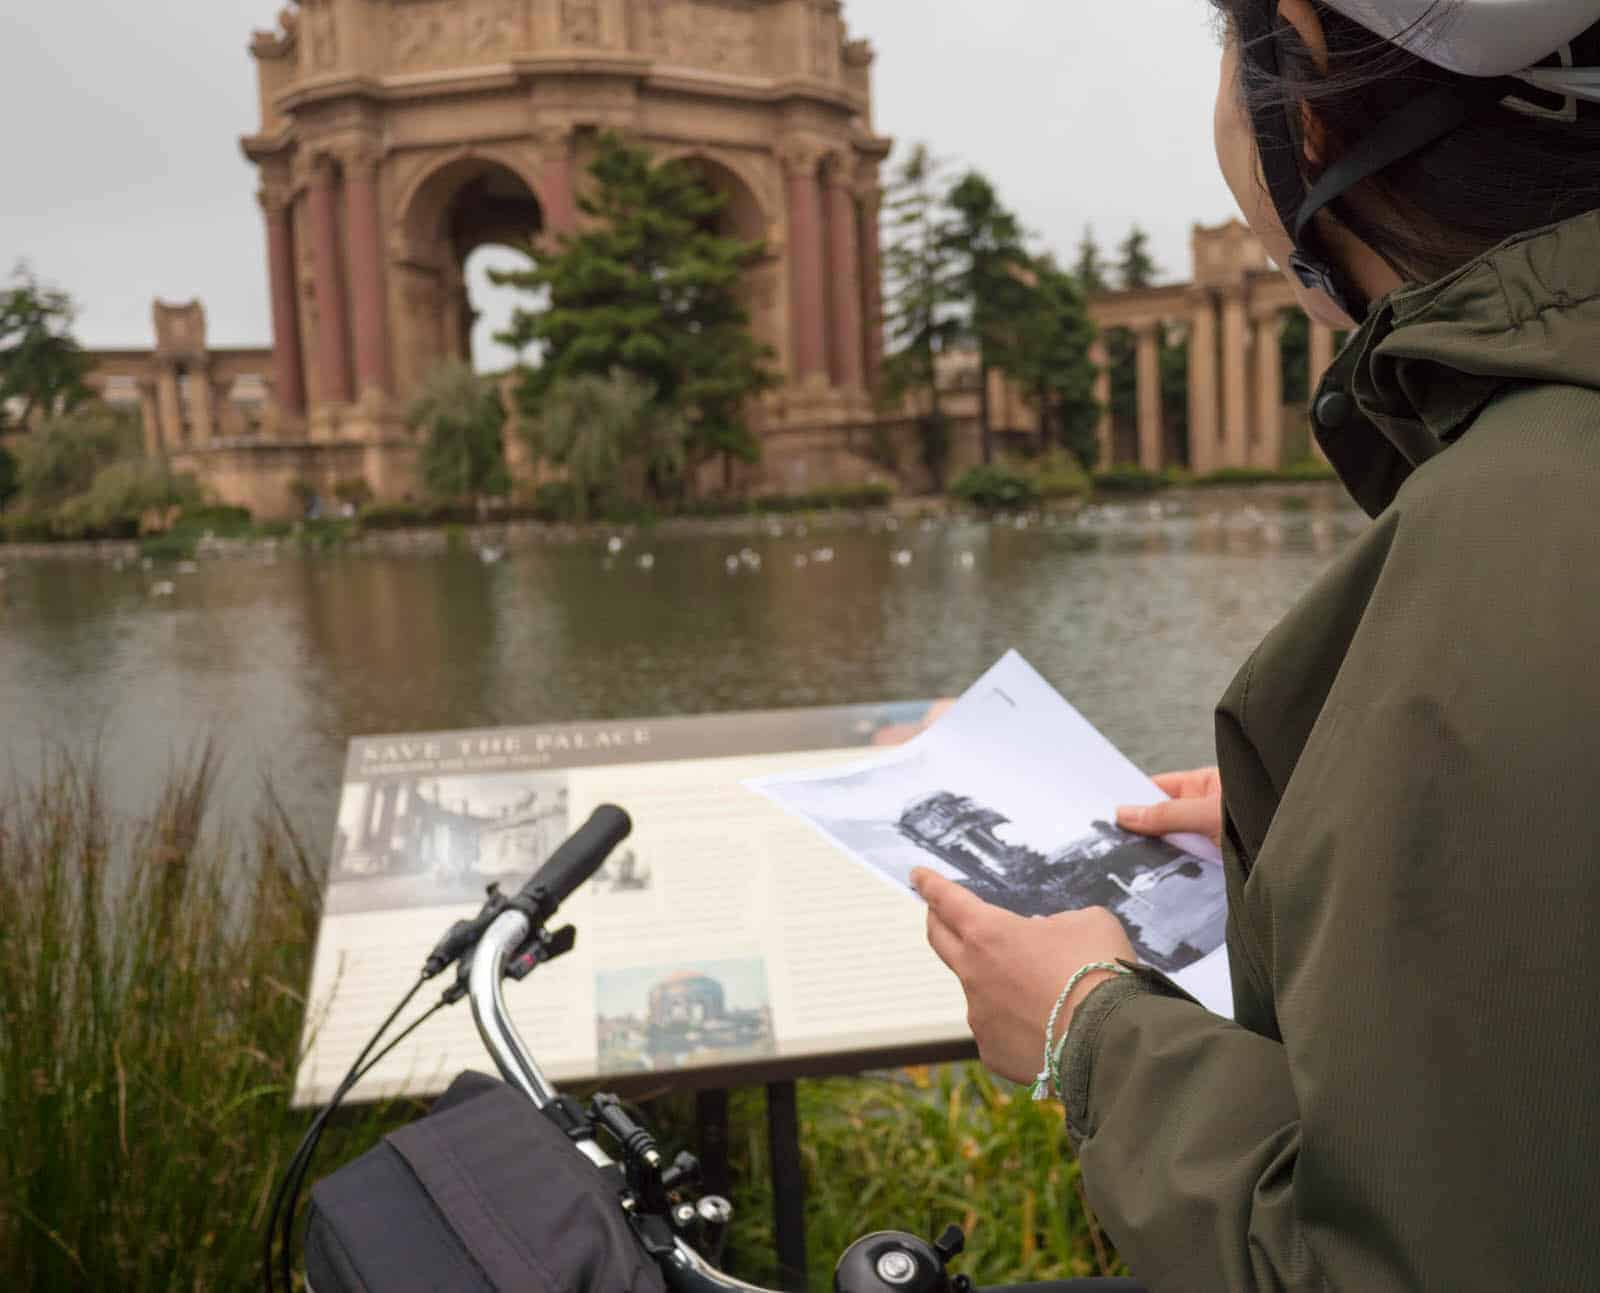 Palace of Fine Arts San Francisco history tour